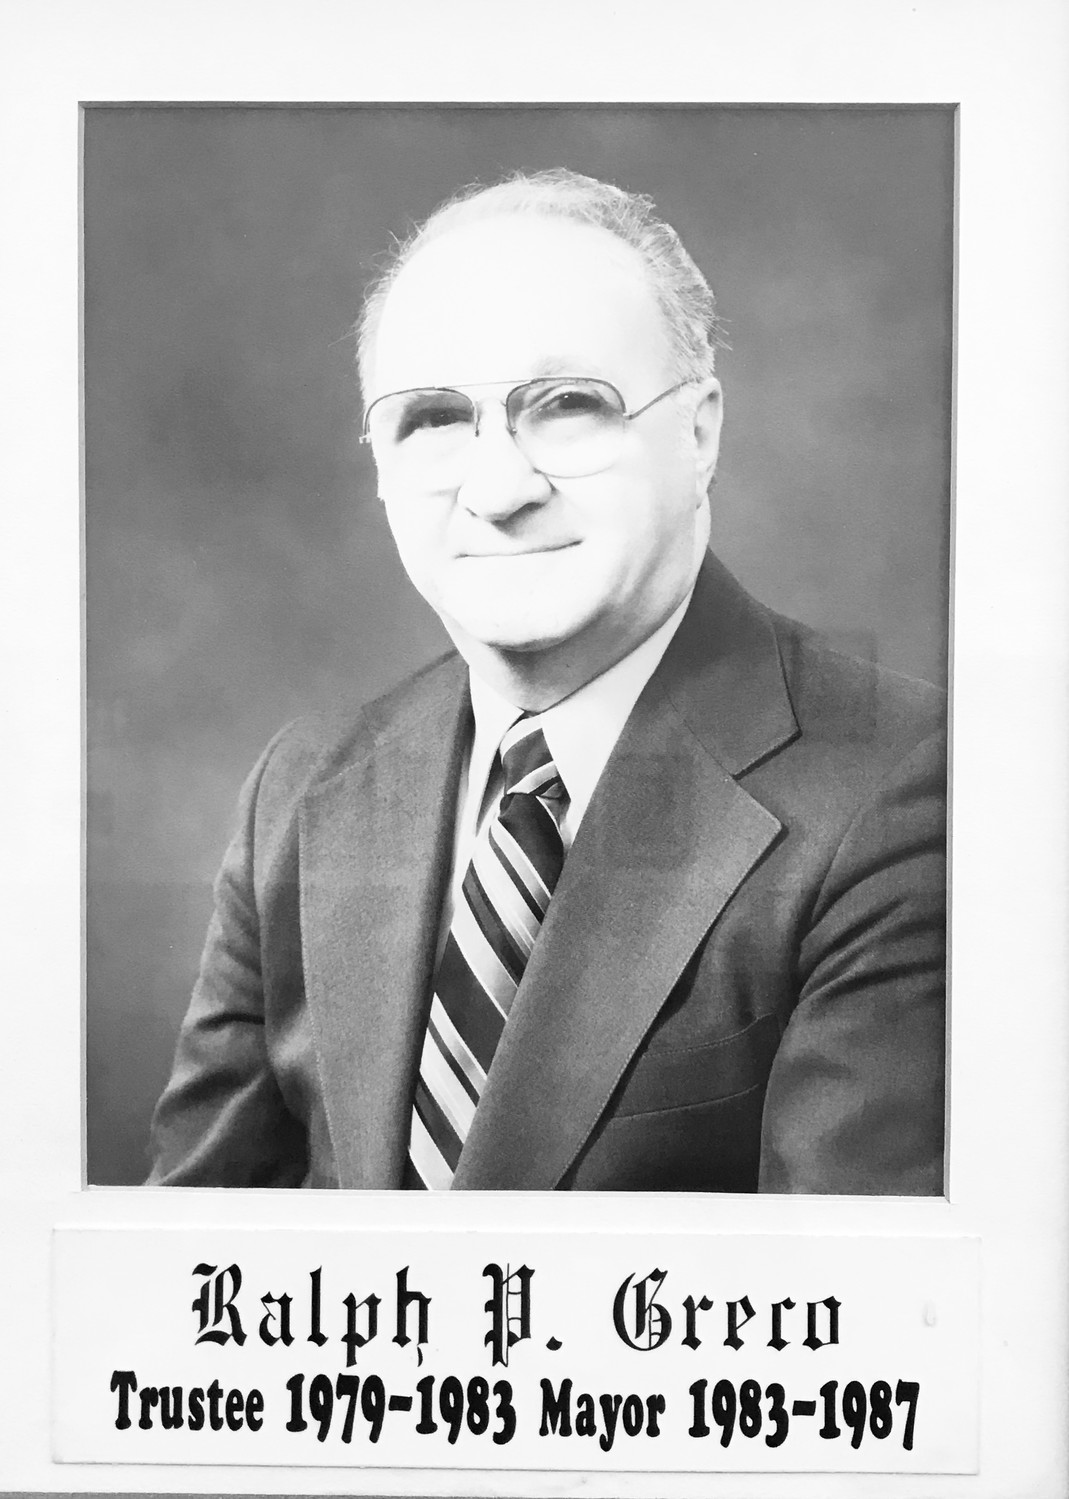 Ralph Greco served as mayor of Valley Stream from 1983 to 1987.